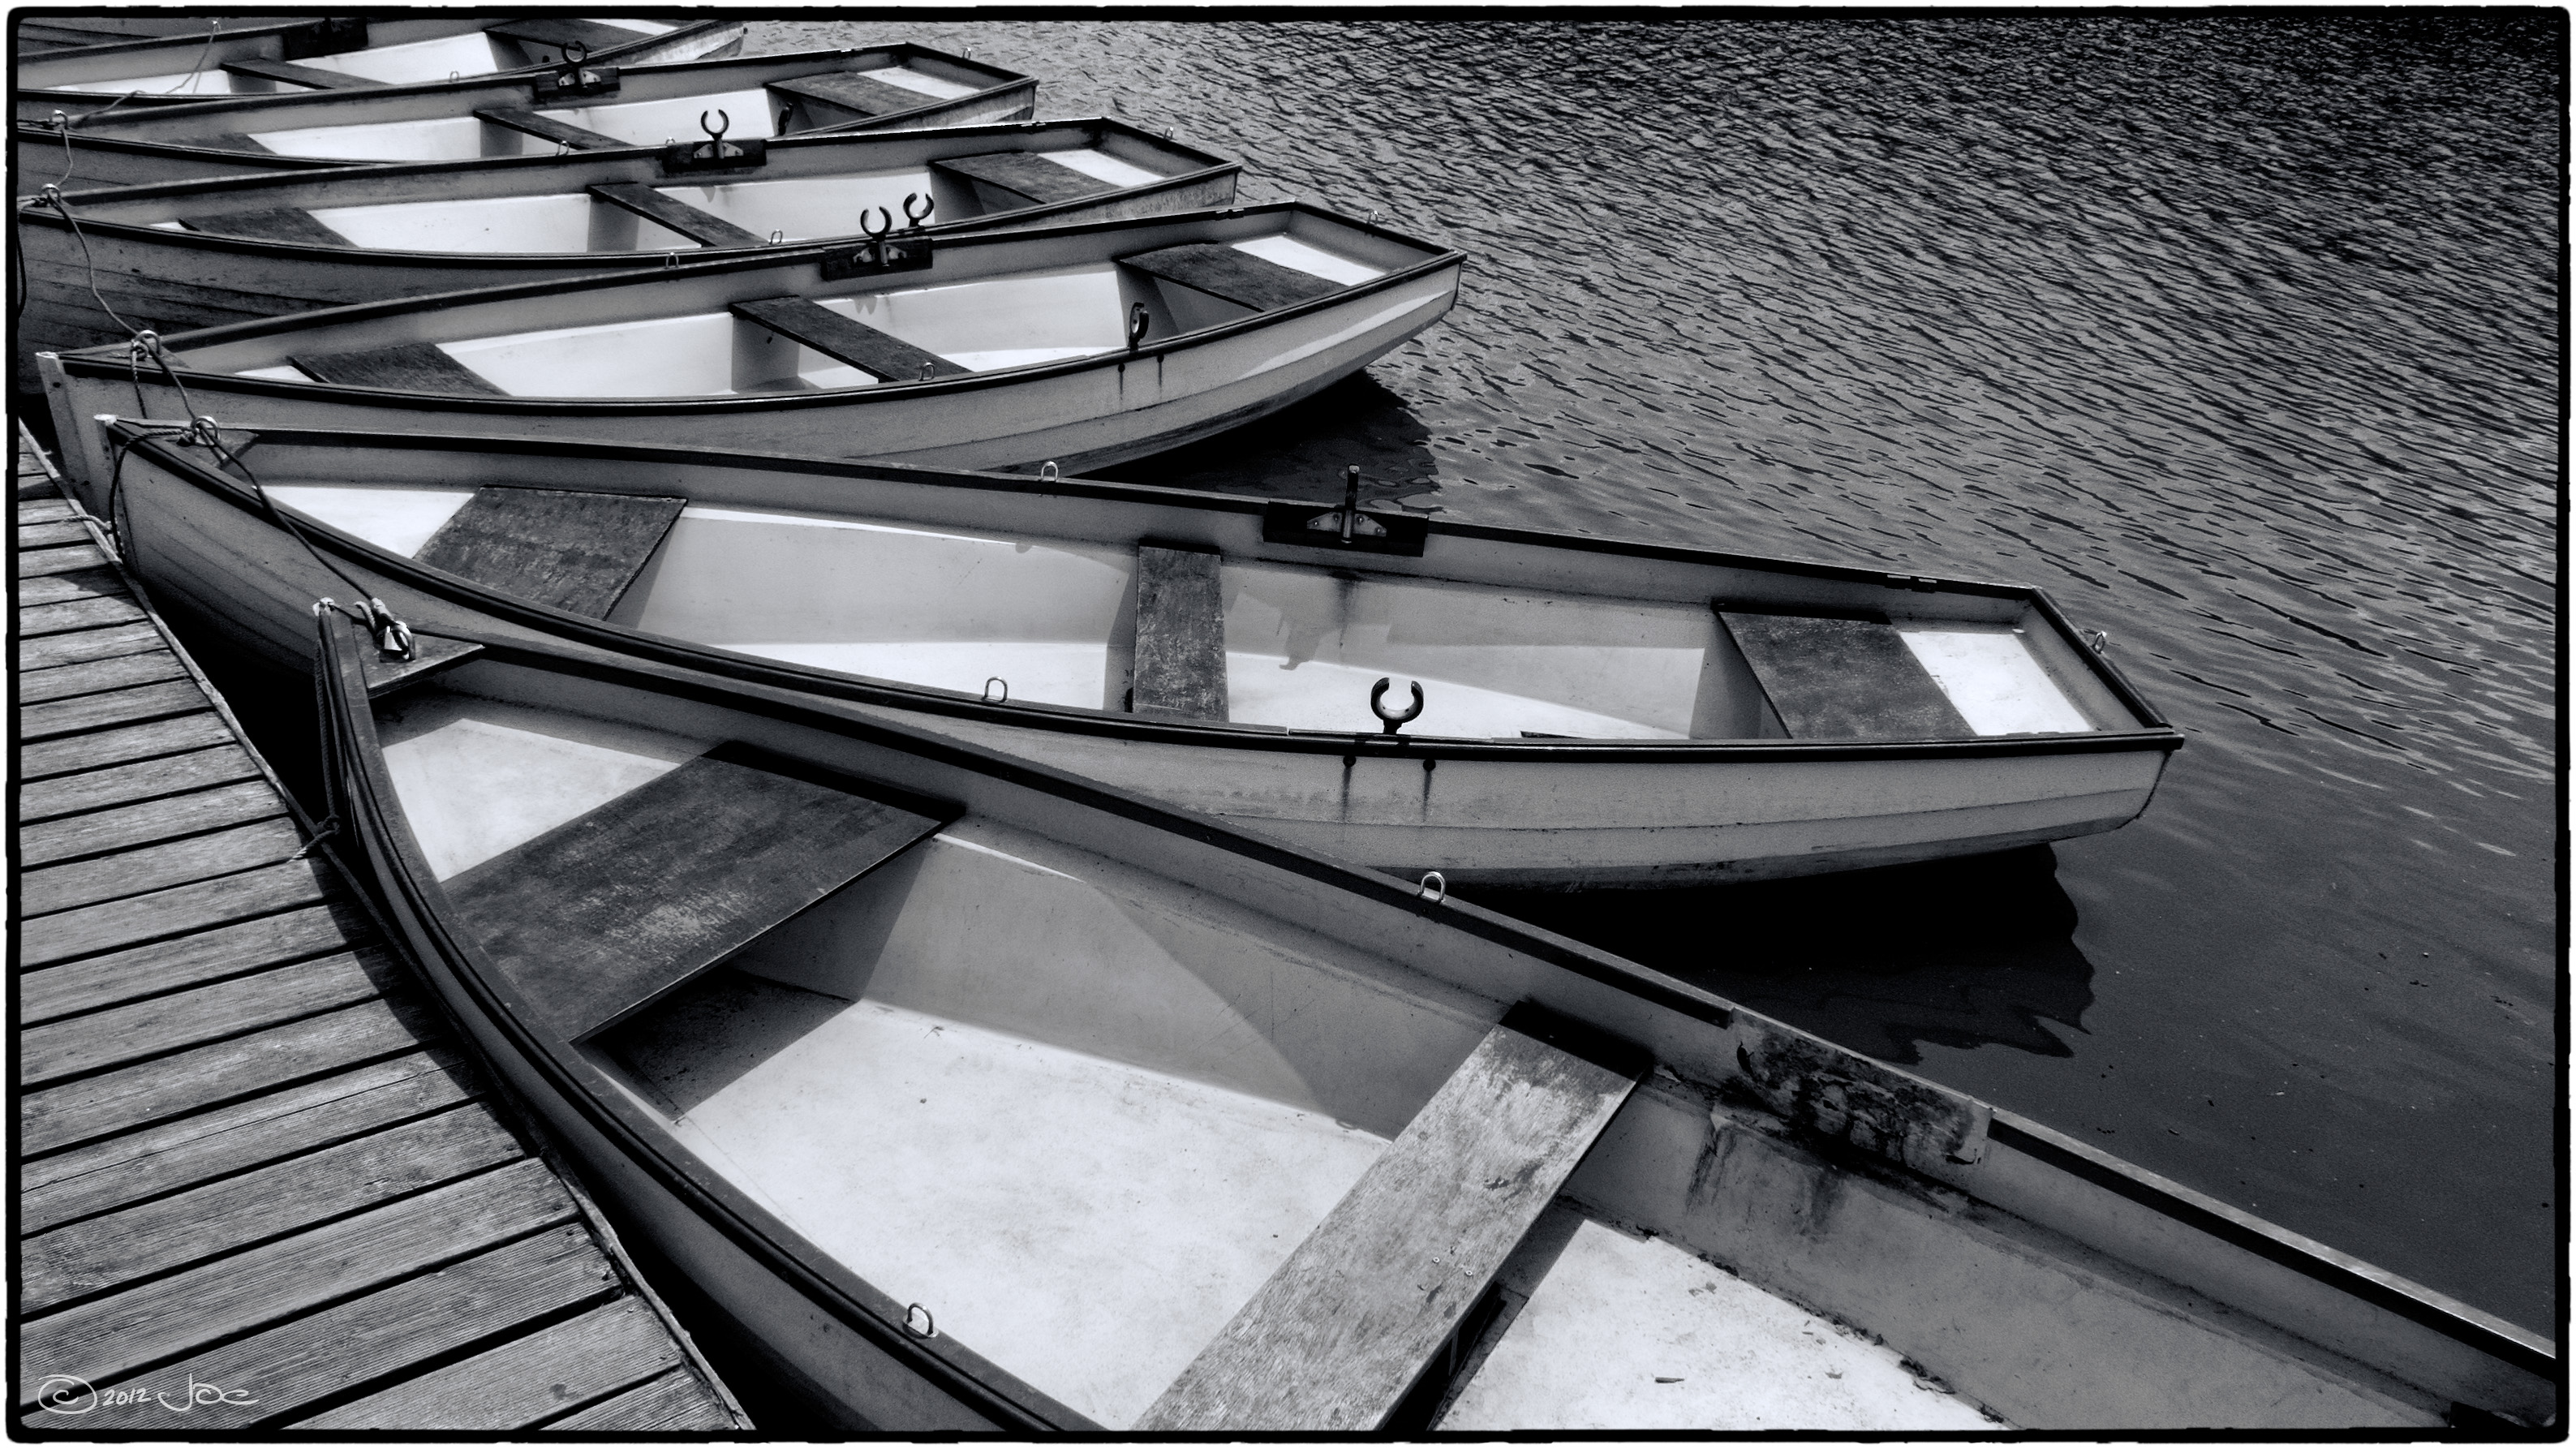 Boats for hire, Versailles, Black, Boat, Boats, Diagonal, HQ Photo